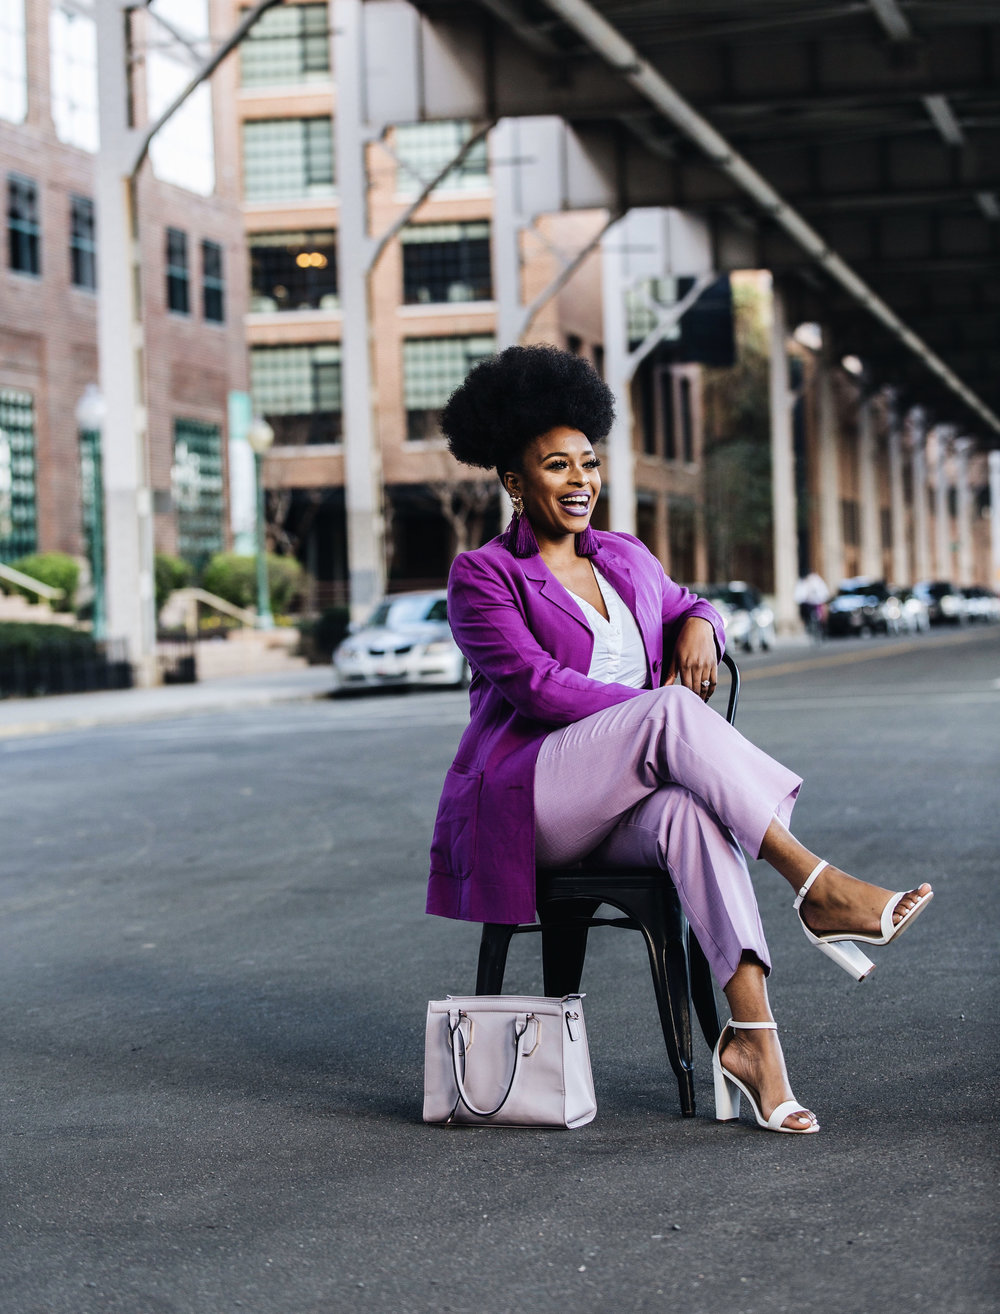 Image of beauty & lifestyle influencer ronkeraji wearing a lavender pants, purple and white heels laughing captured by photographer The Creative Gentleman for Fashion Bomb Daily. This image was taken during the Conversations with Claire brunch event in Washington, D.C.